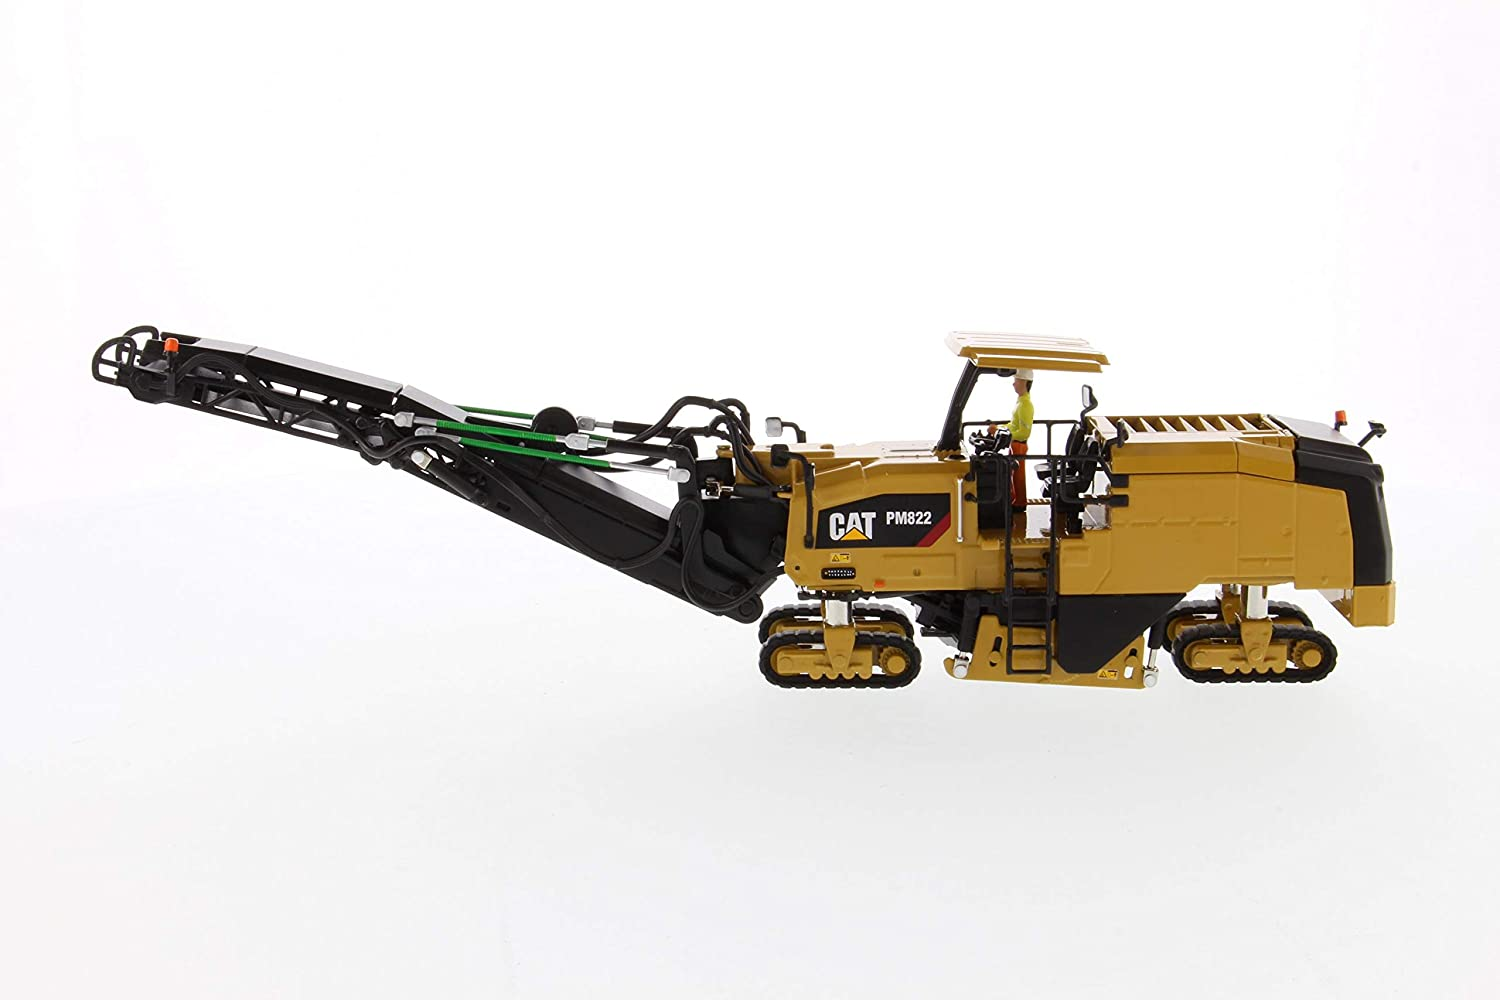 Diecast Masters CAT Caterpillar PM622 Cold Planer with Operator High Line Series 1/50 Diecast Model 85587